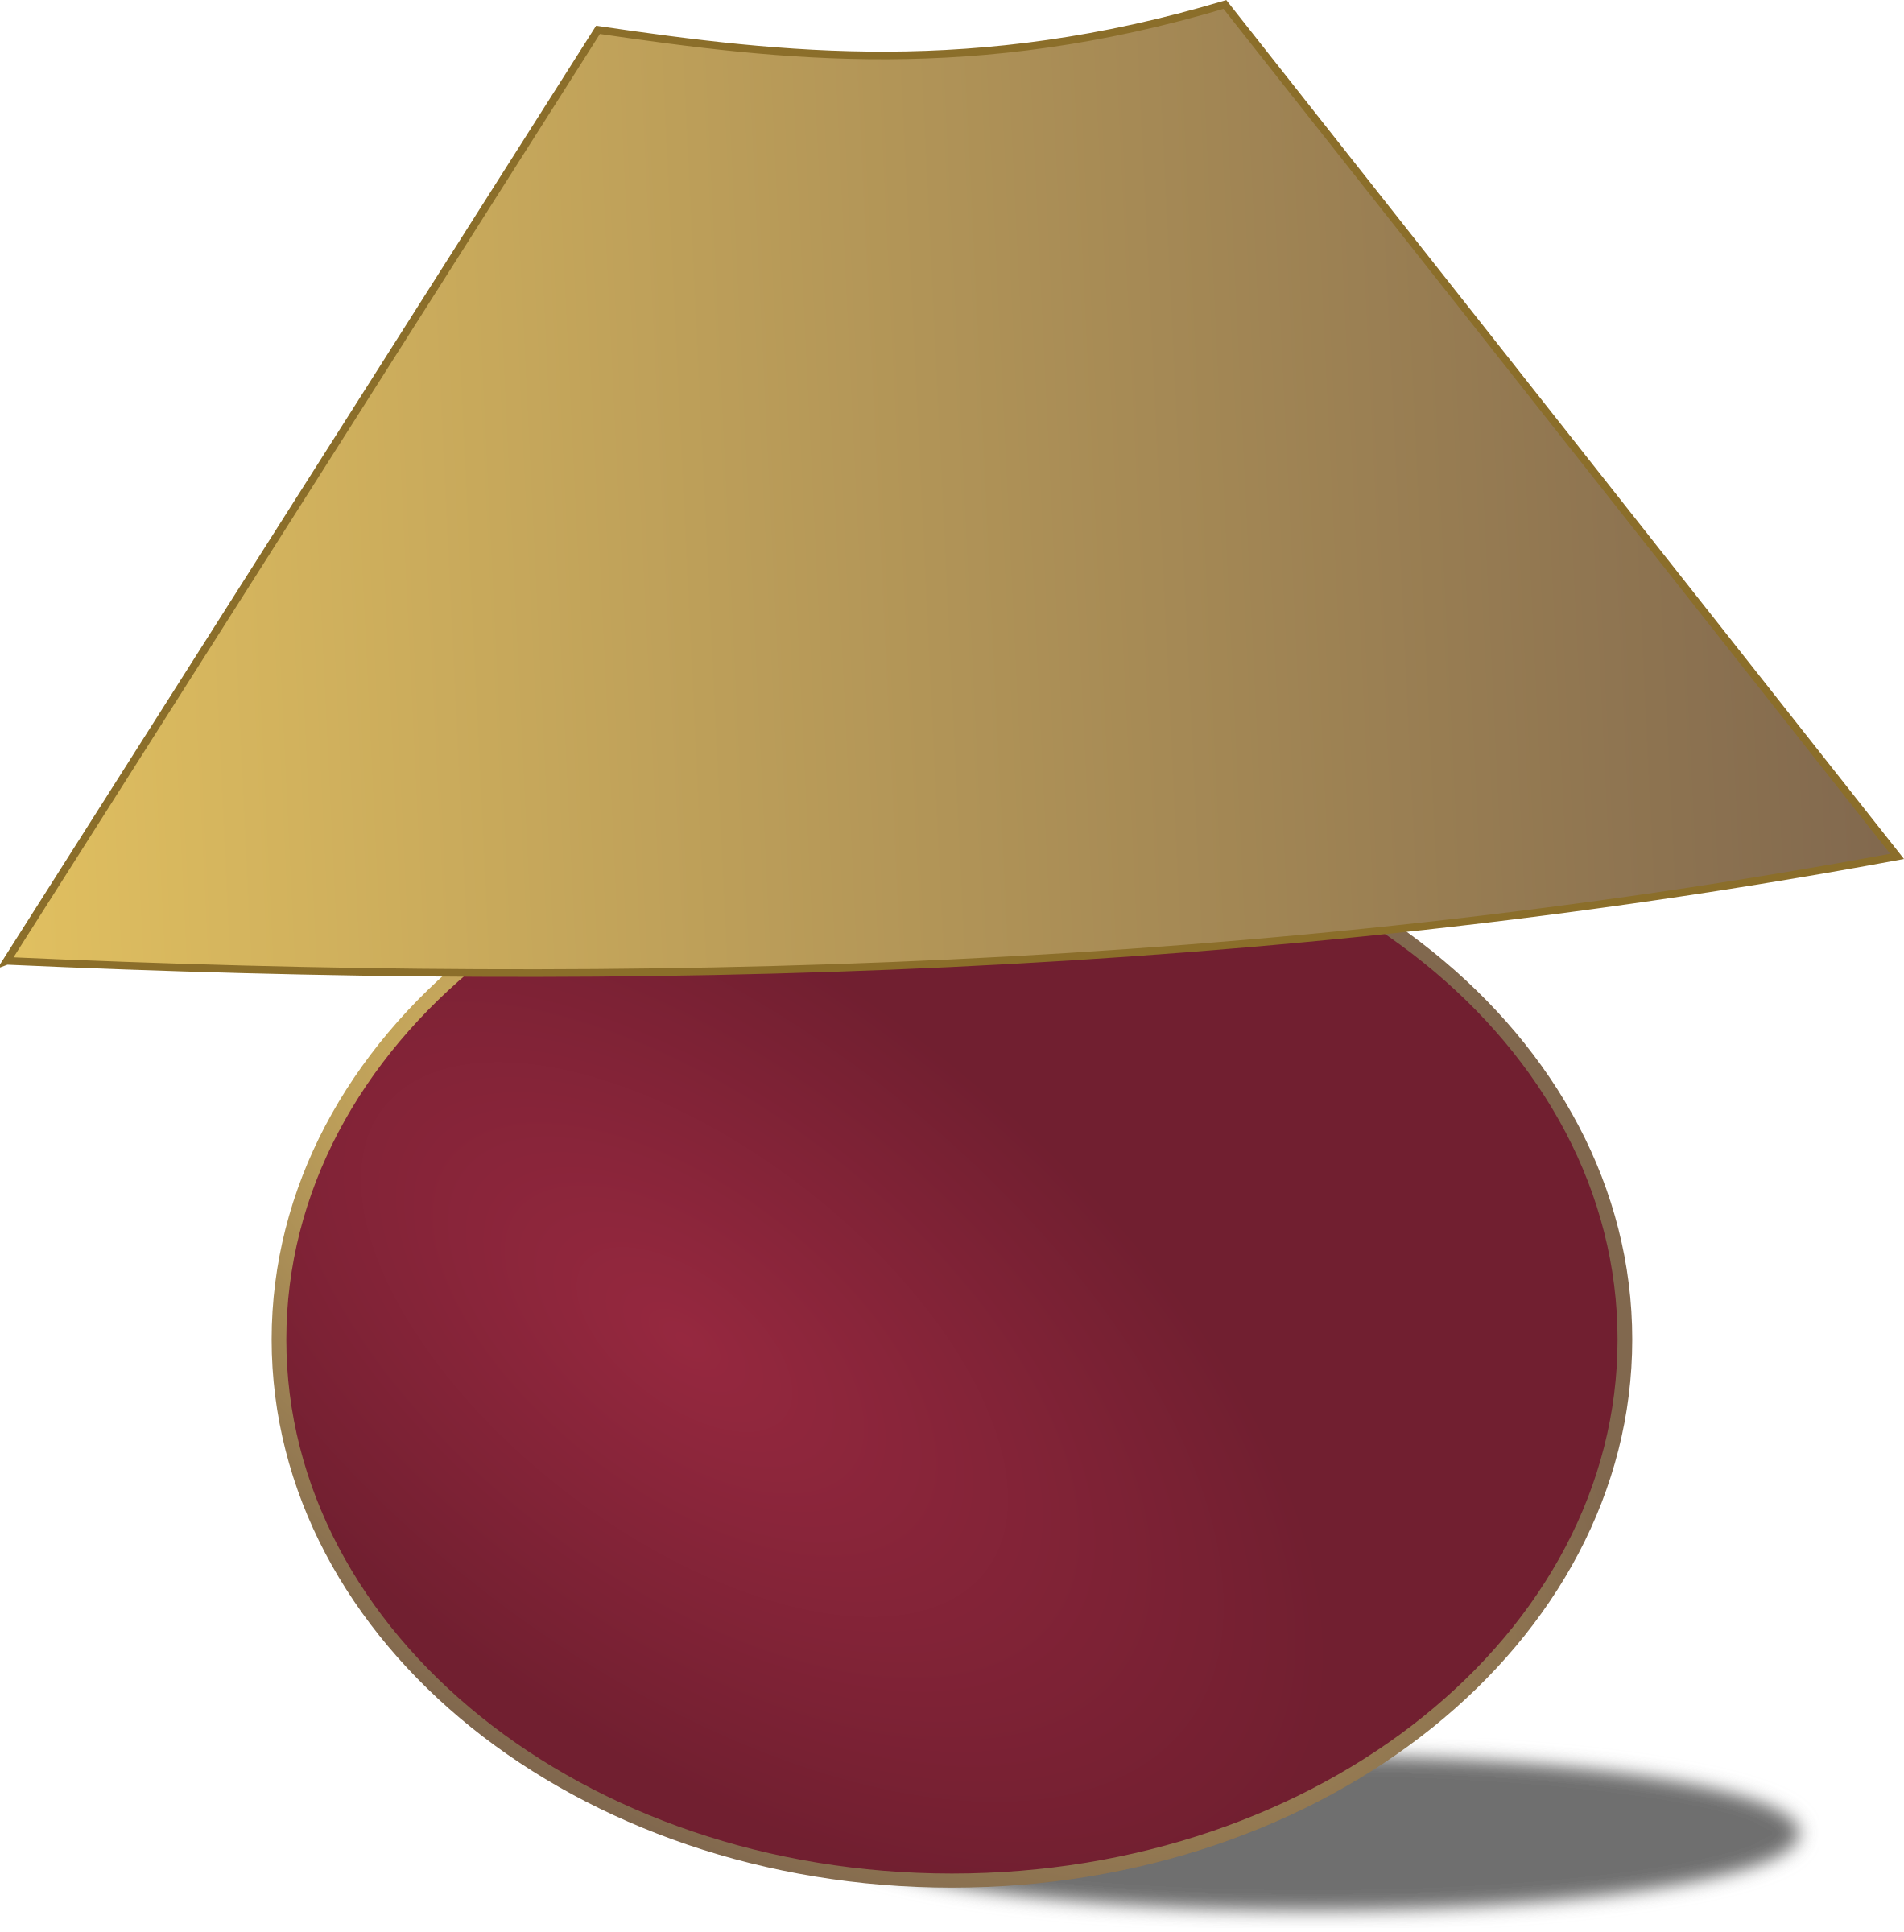 Lamp by Tedel